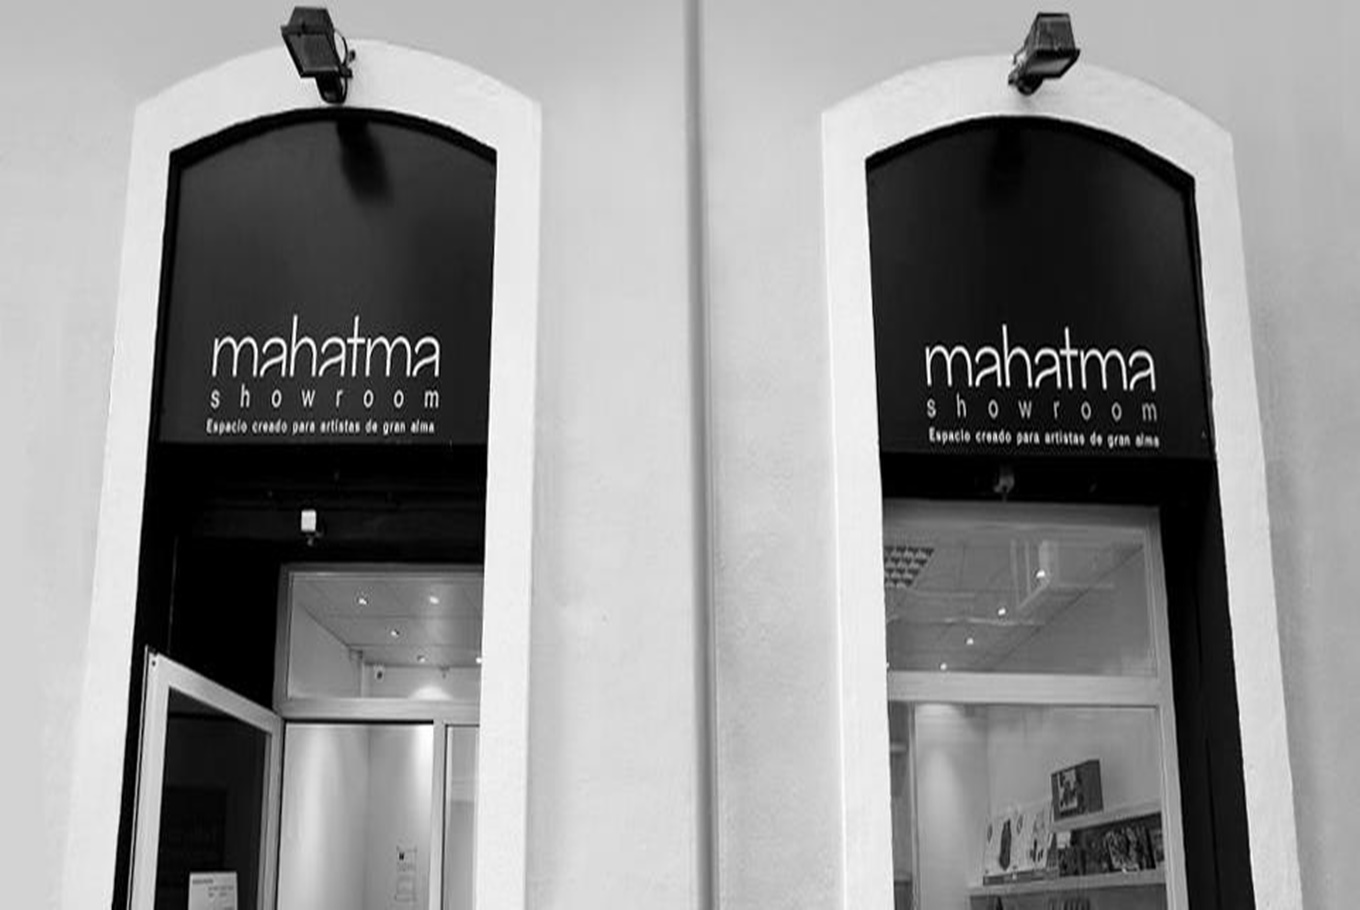 Mahatma Showroom